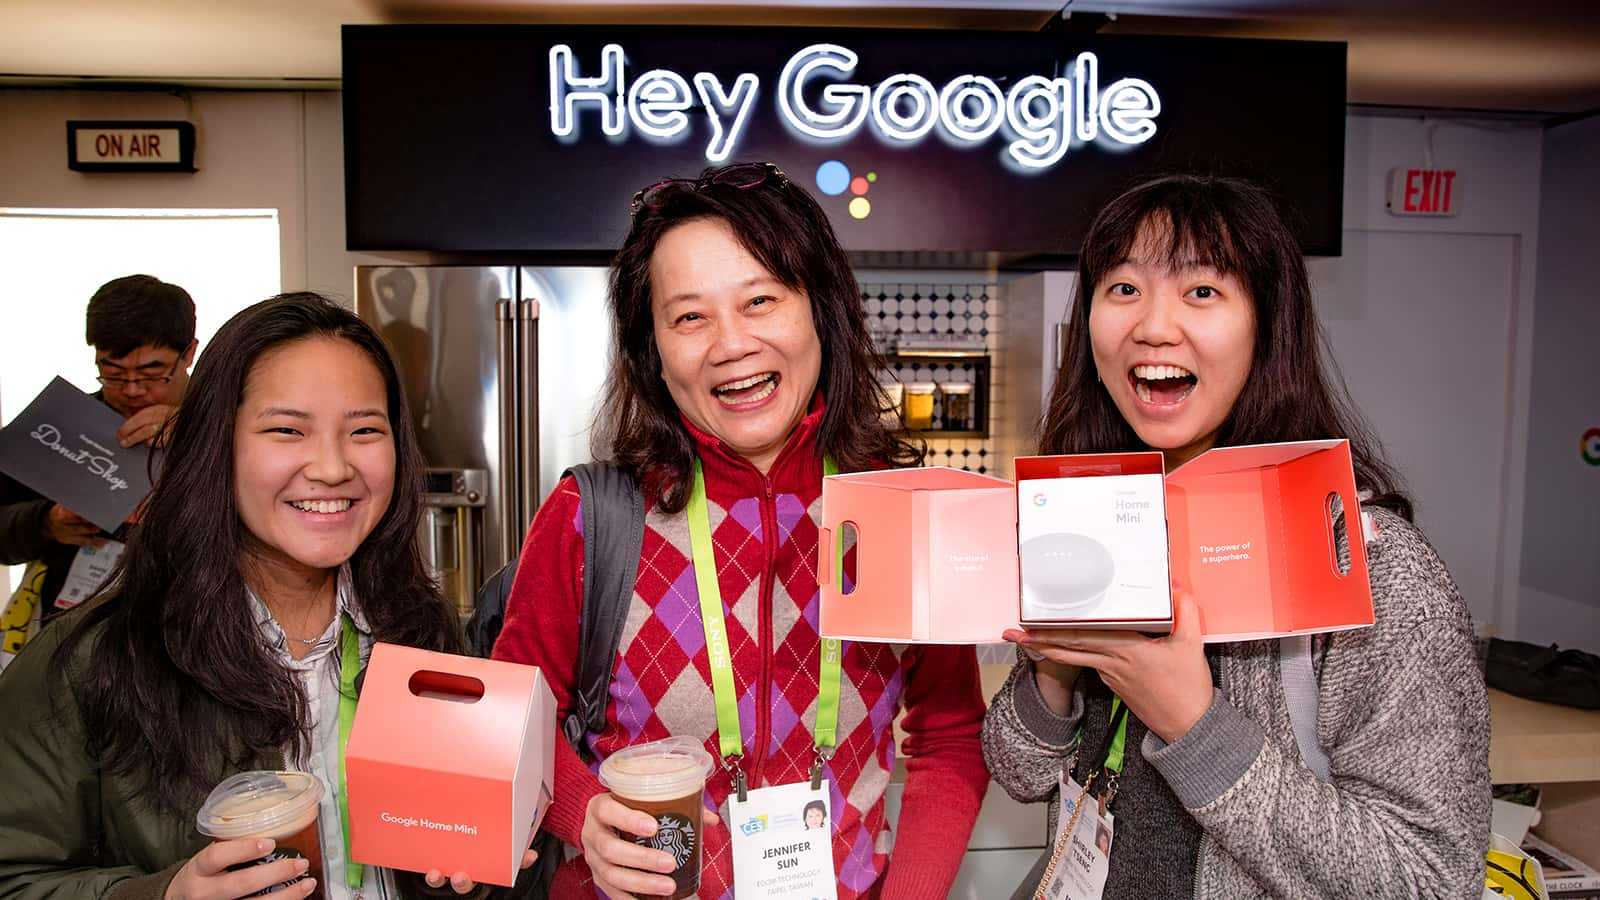 Attendees excited about new Google products at the Google CES 2018 experience.